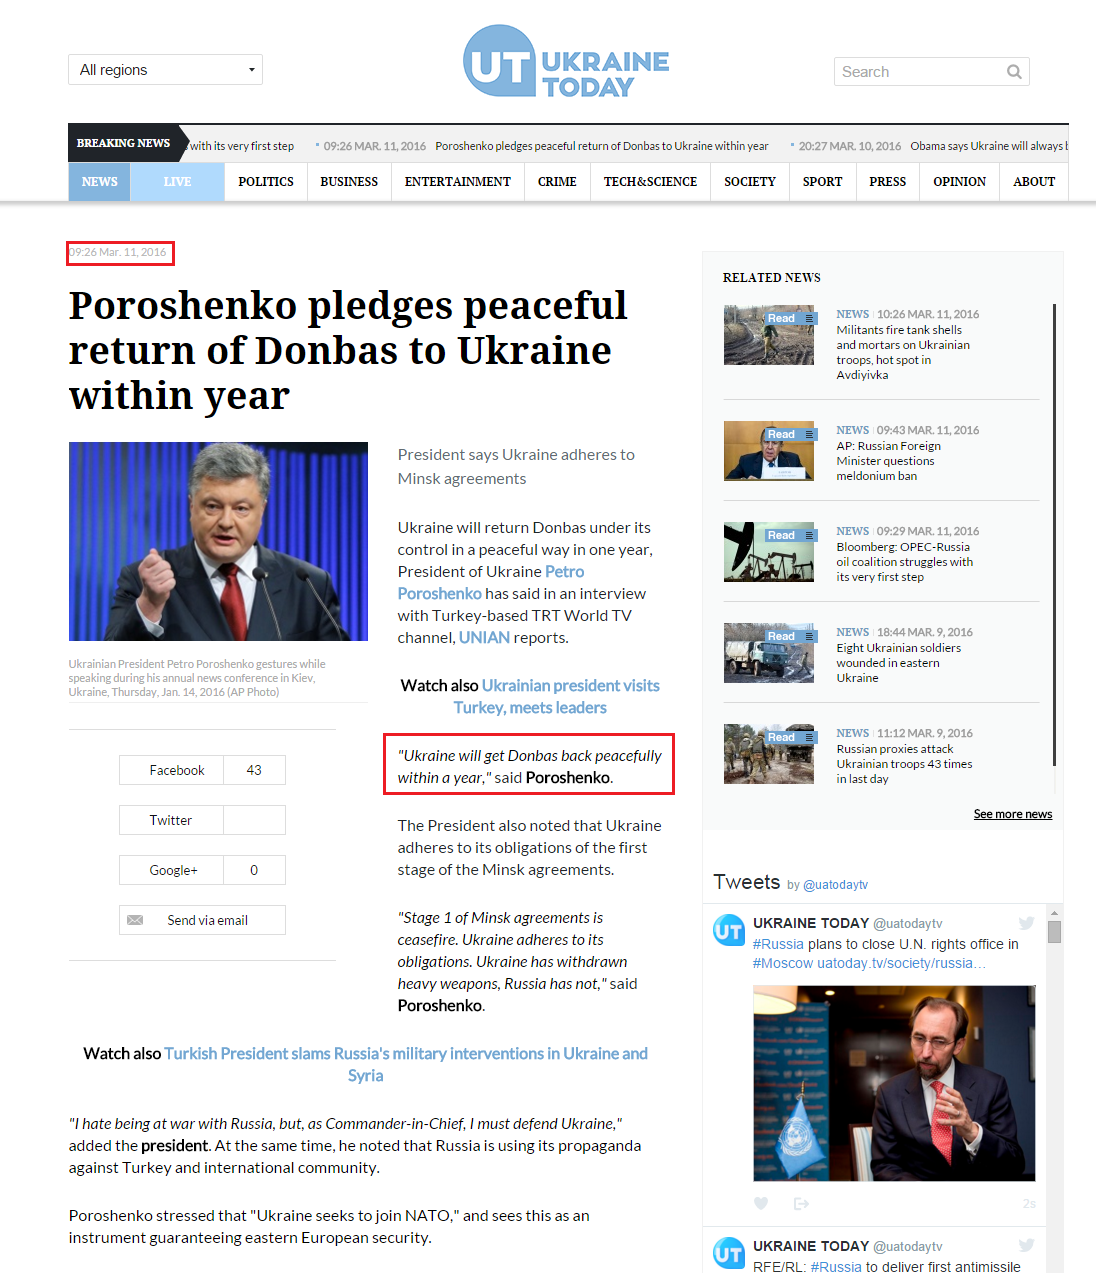 http://uatoday.tv/news/poroshenko-pledges-peaceful-return-of-donbas-to-ukraine-within-year-608017.html